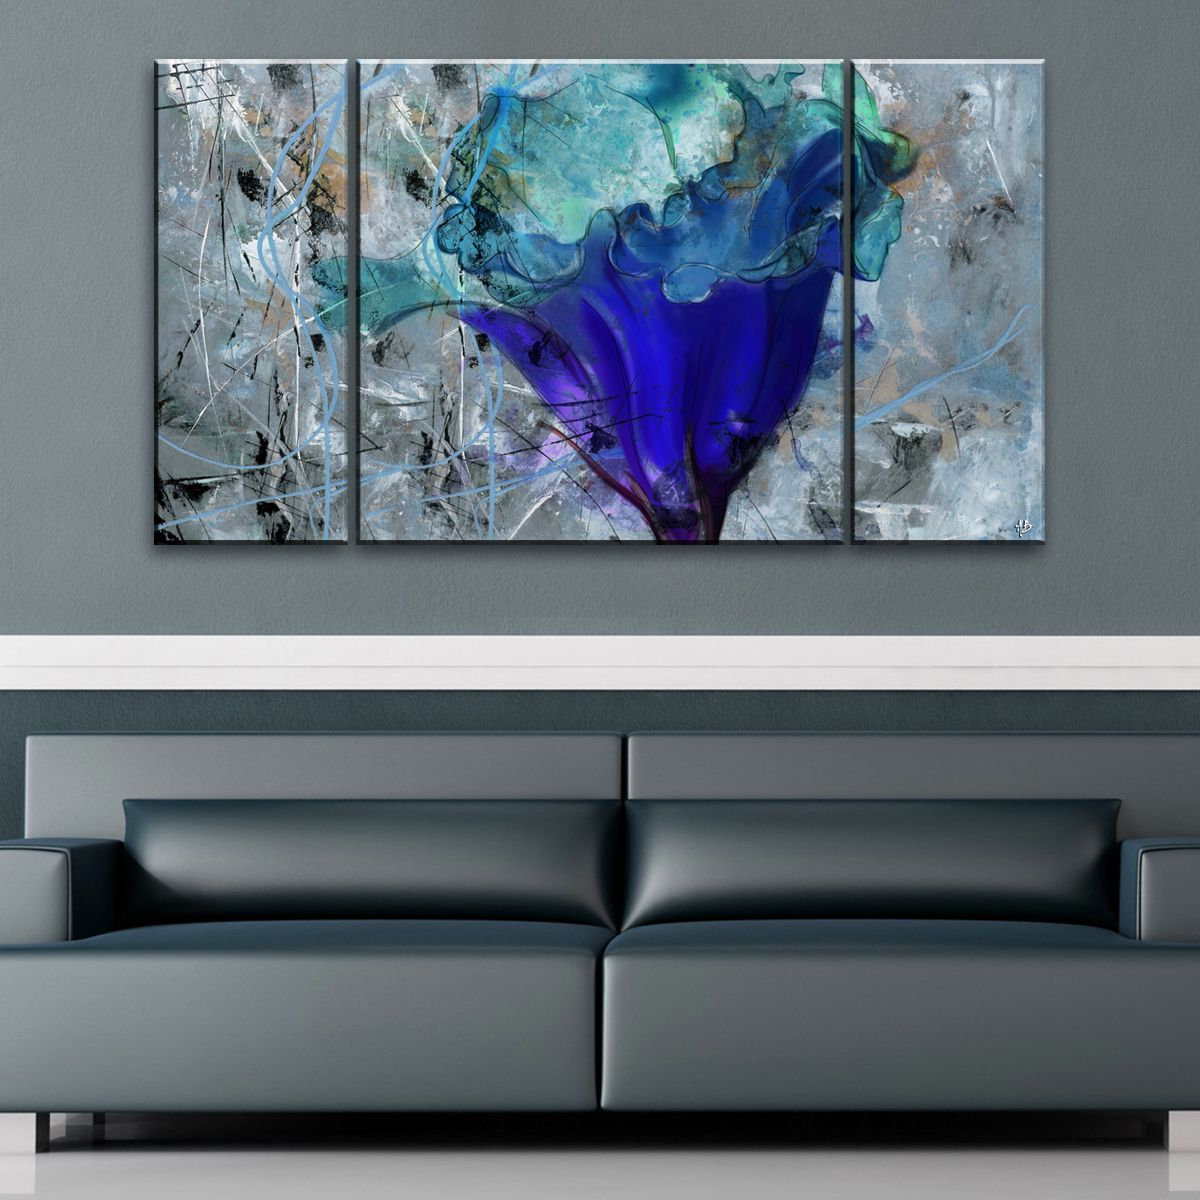 Gallery Wrapped Canvas For Less